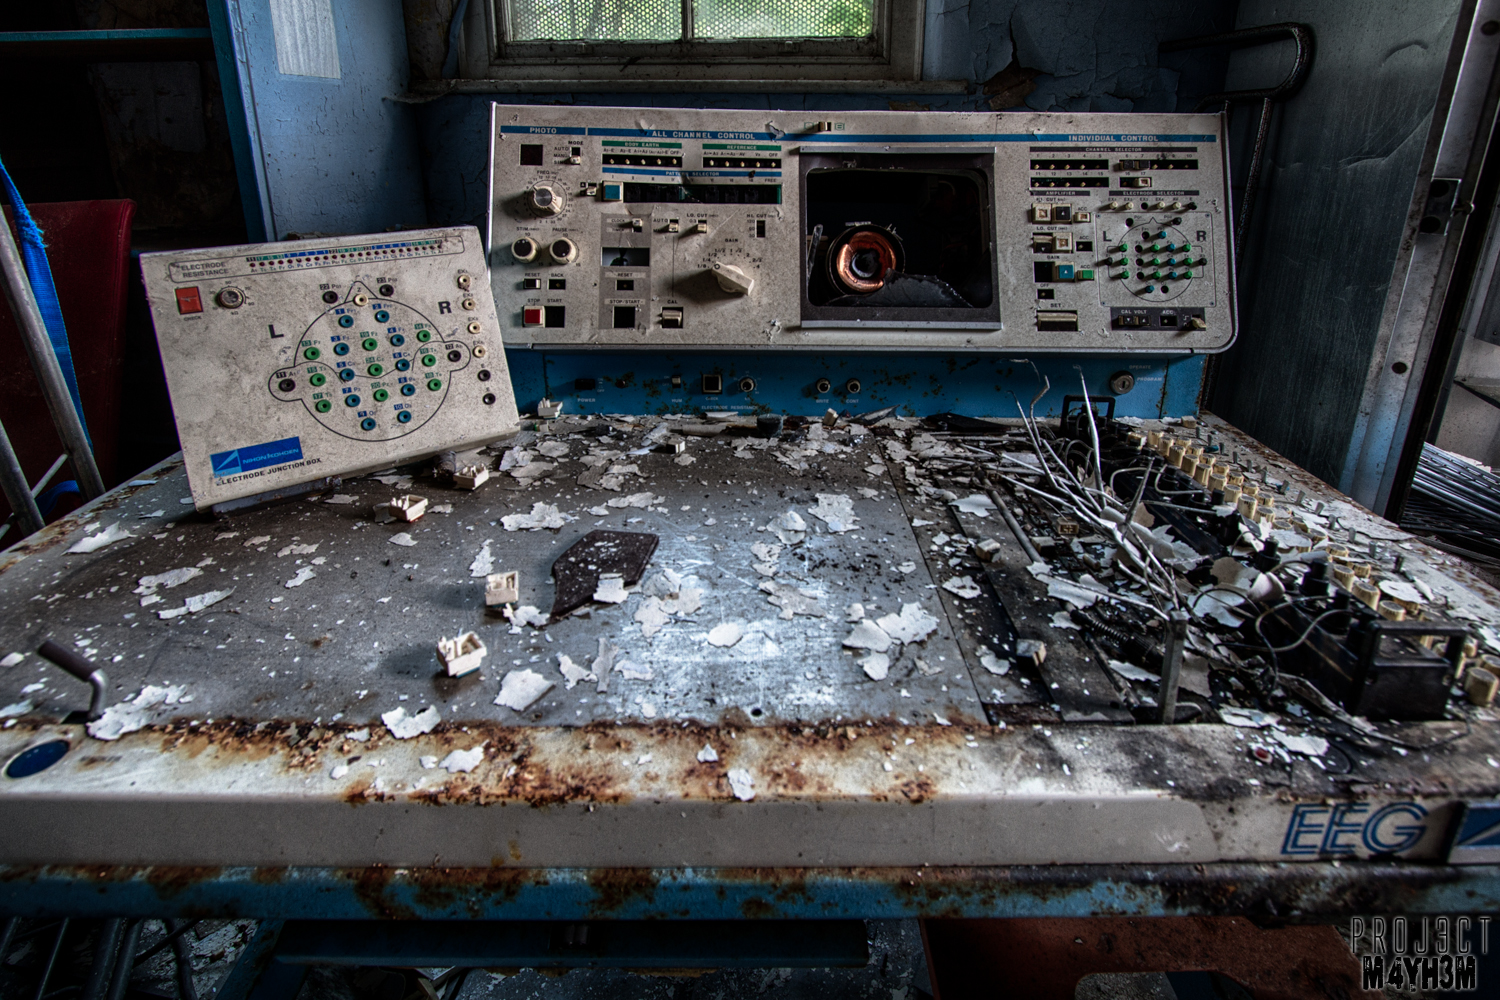 The Abandoned Whittingham Asylum - EEG Machine